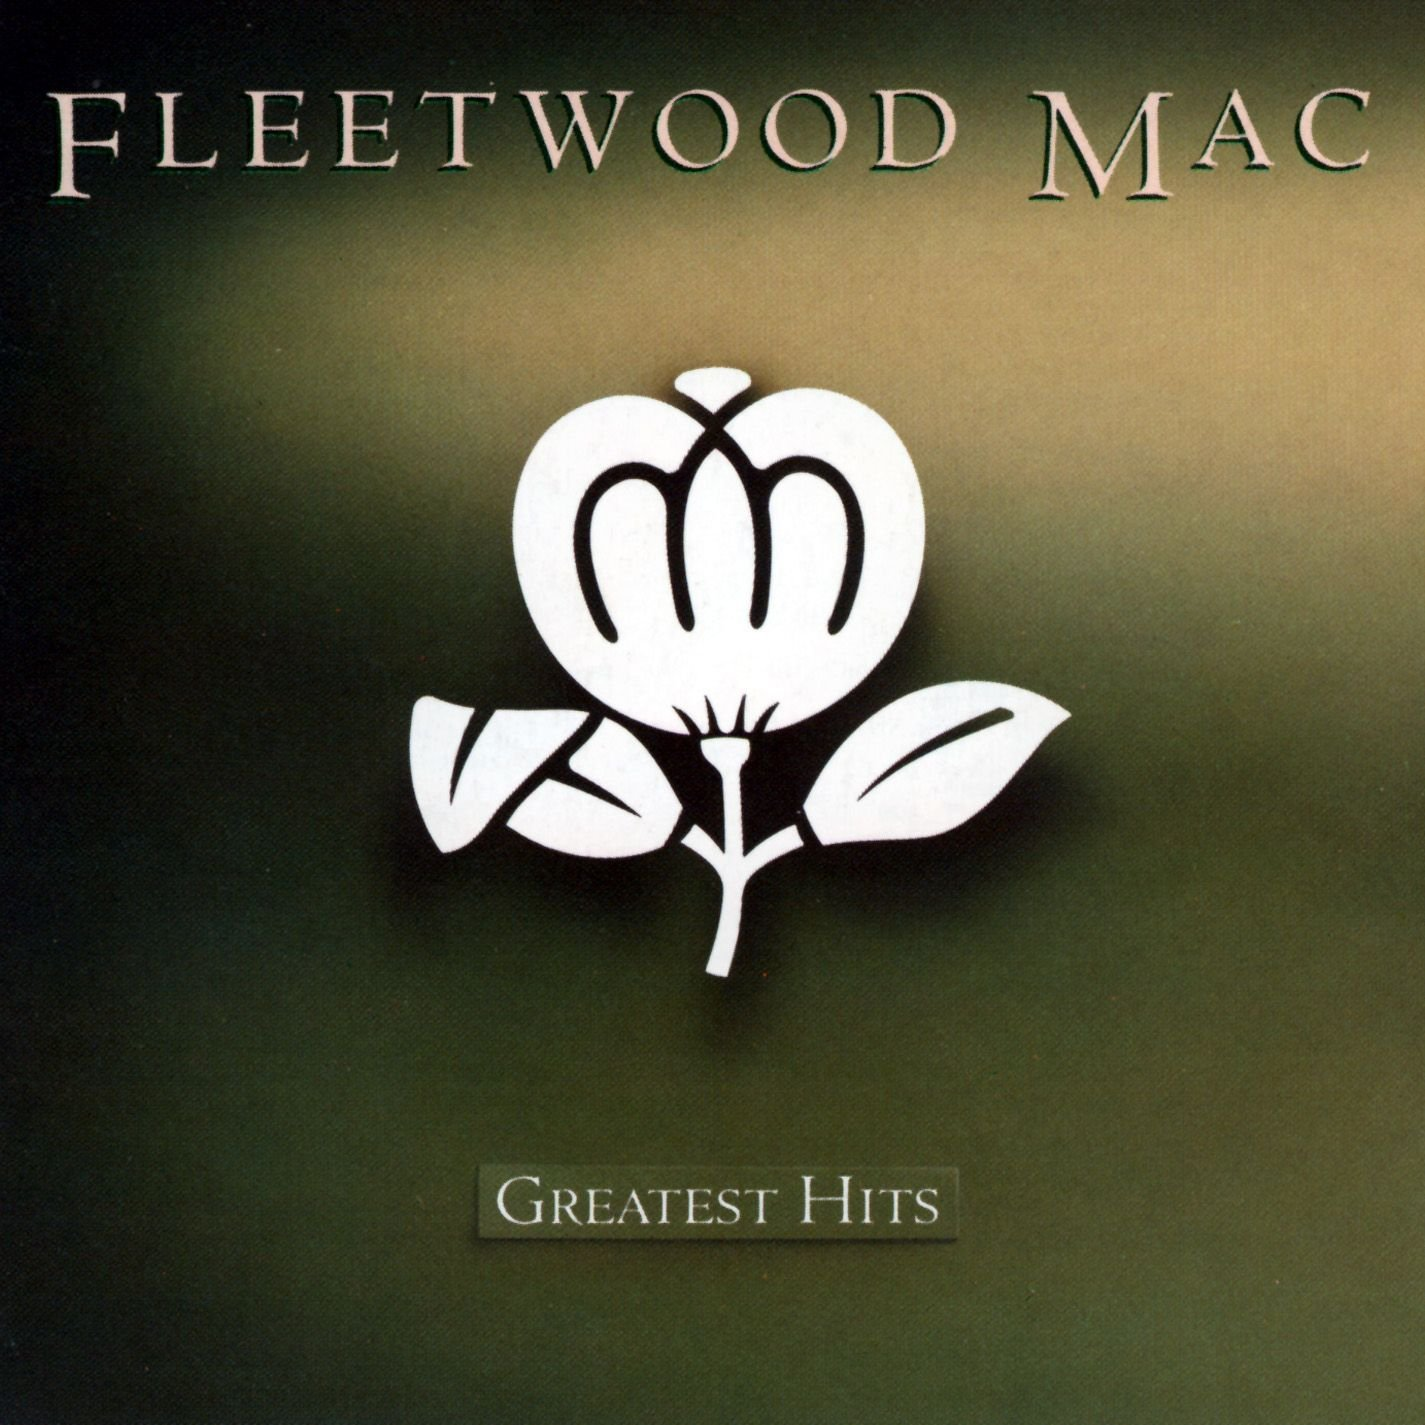 FLEETWOOD GREATEST